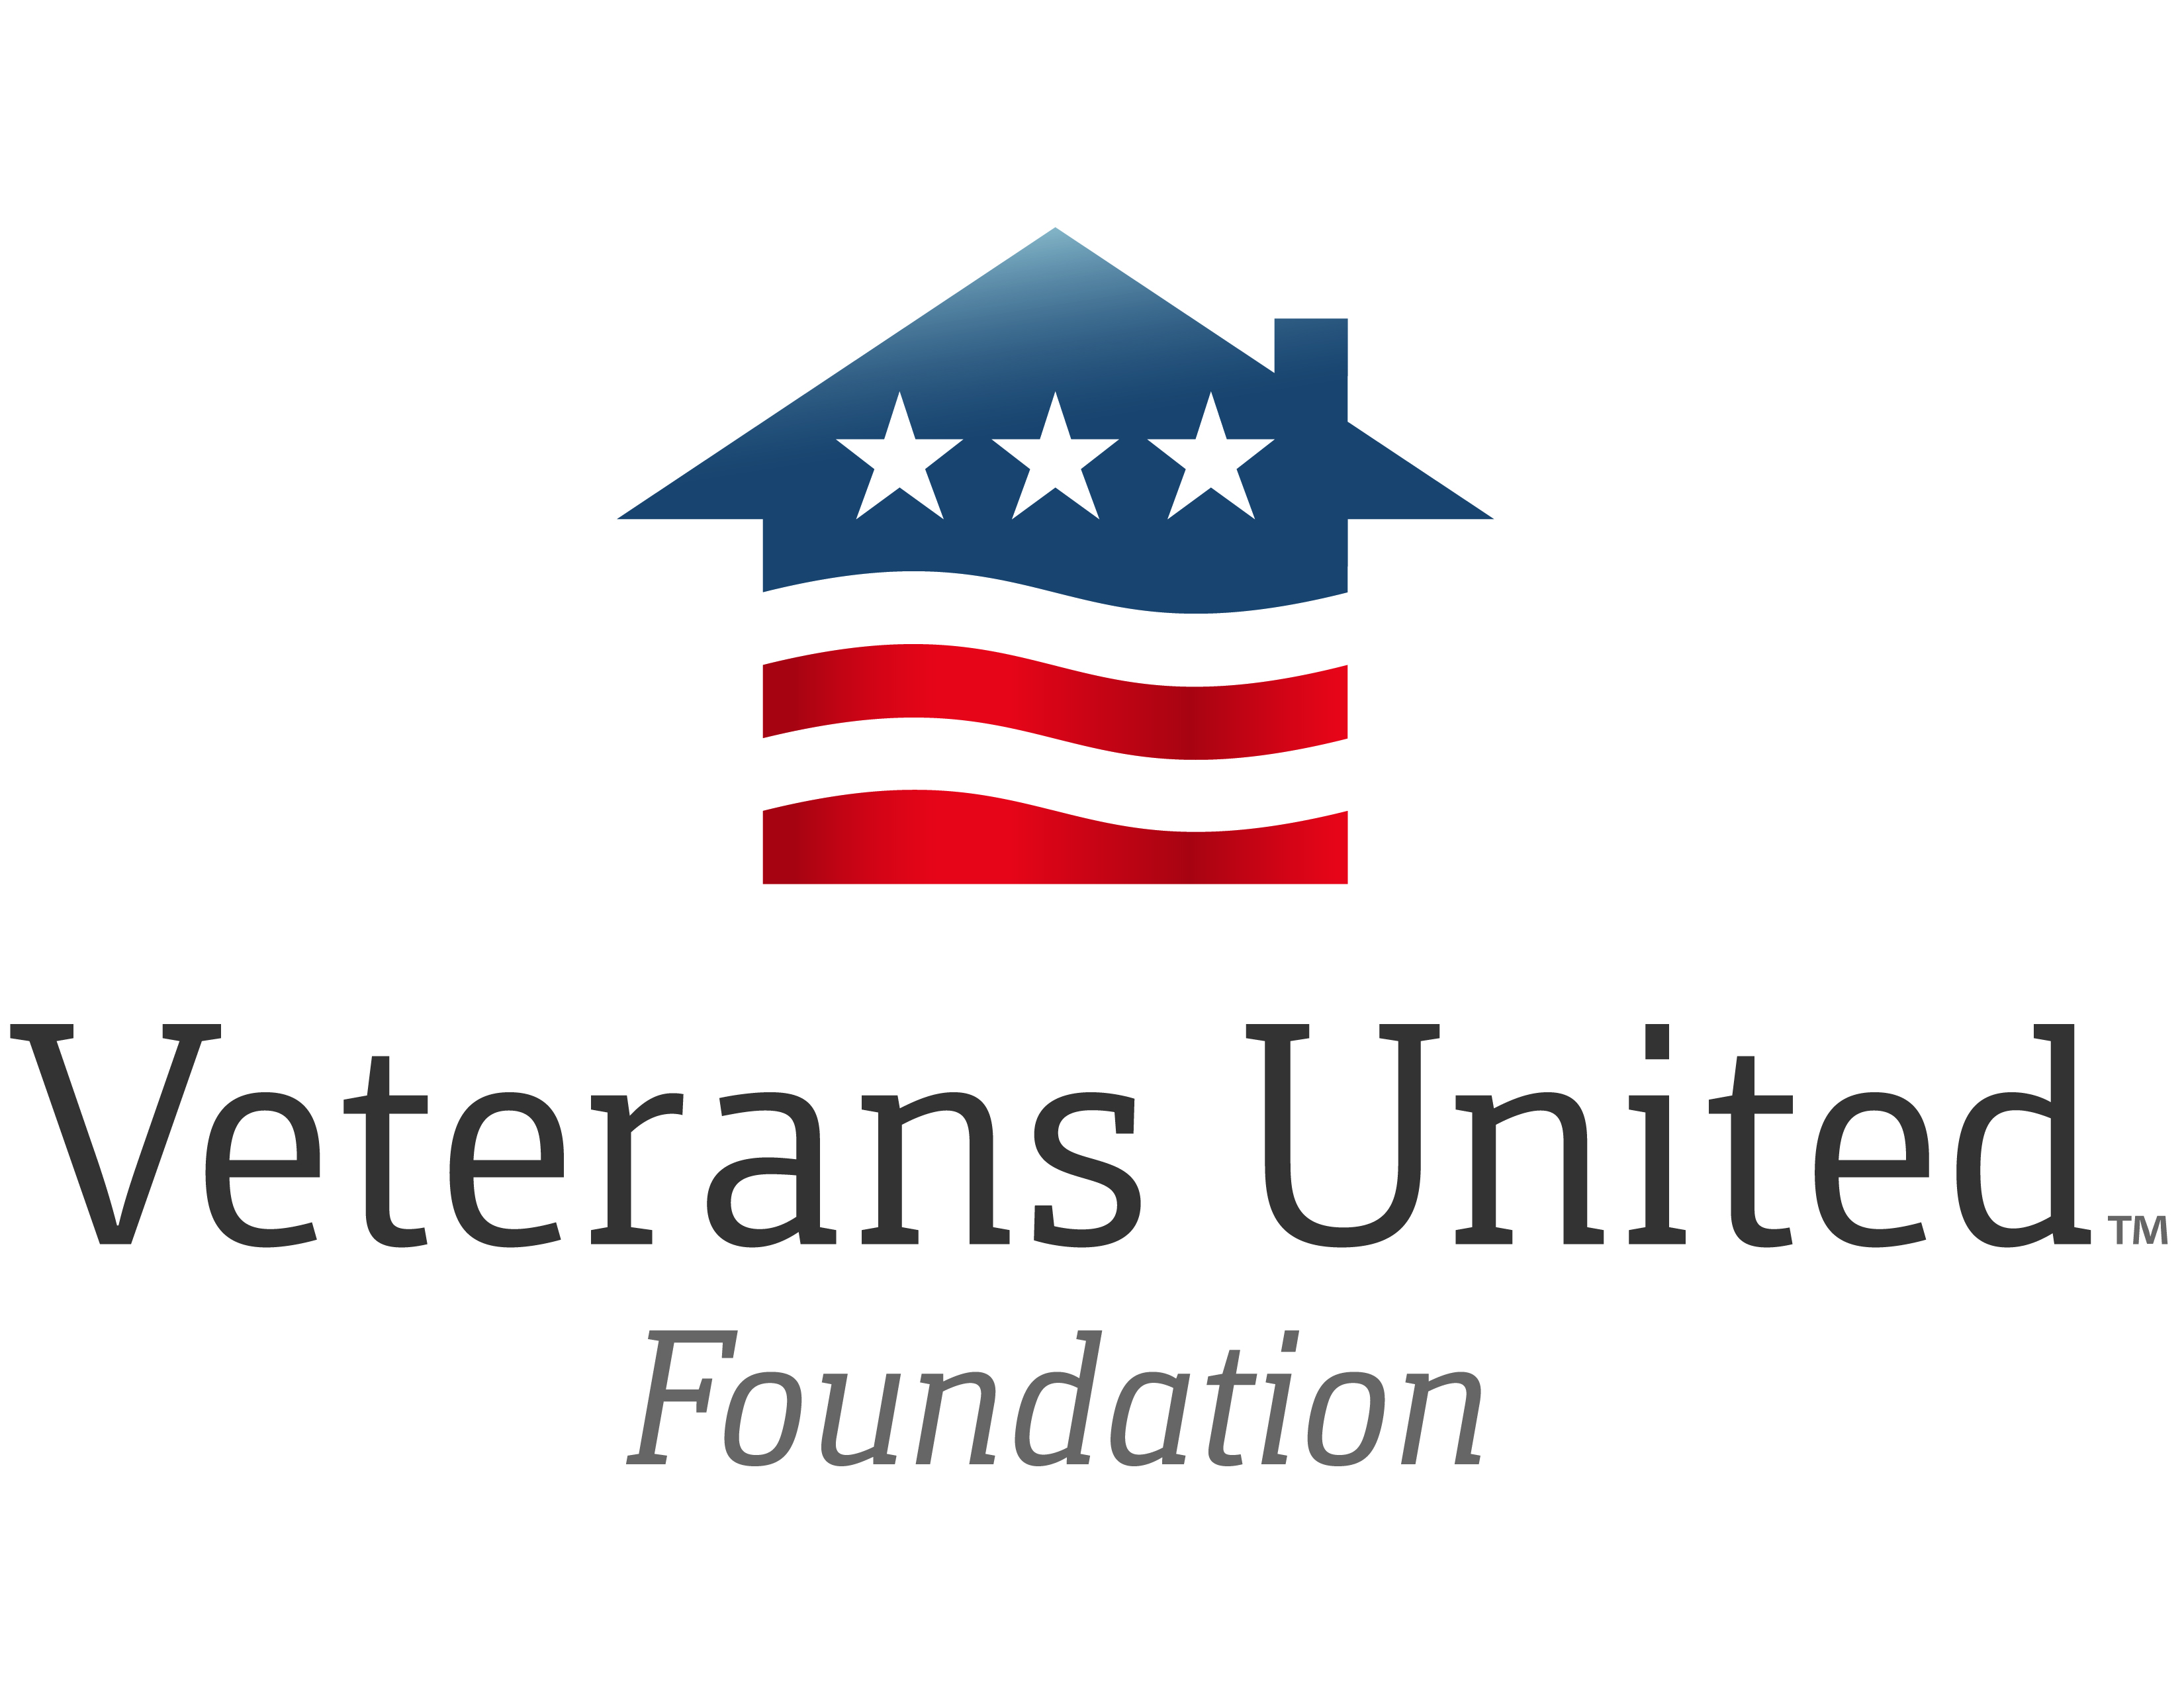 Thank you Veterans United Foundation for supporting ASYMCA